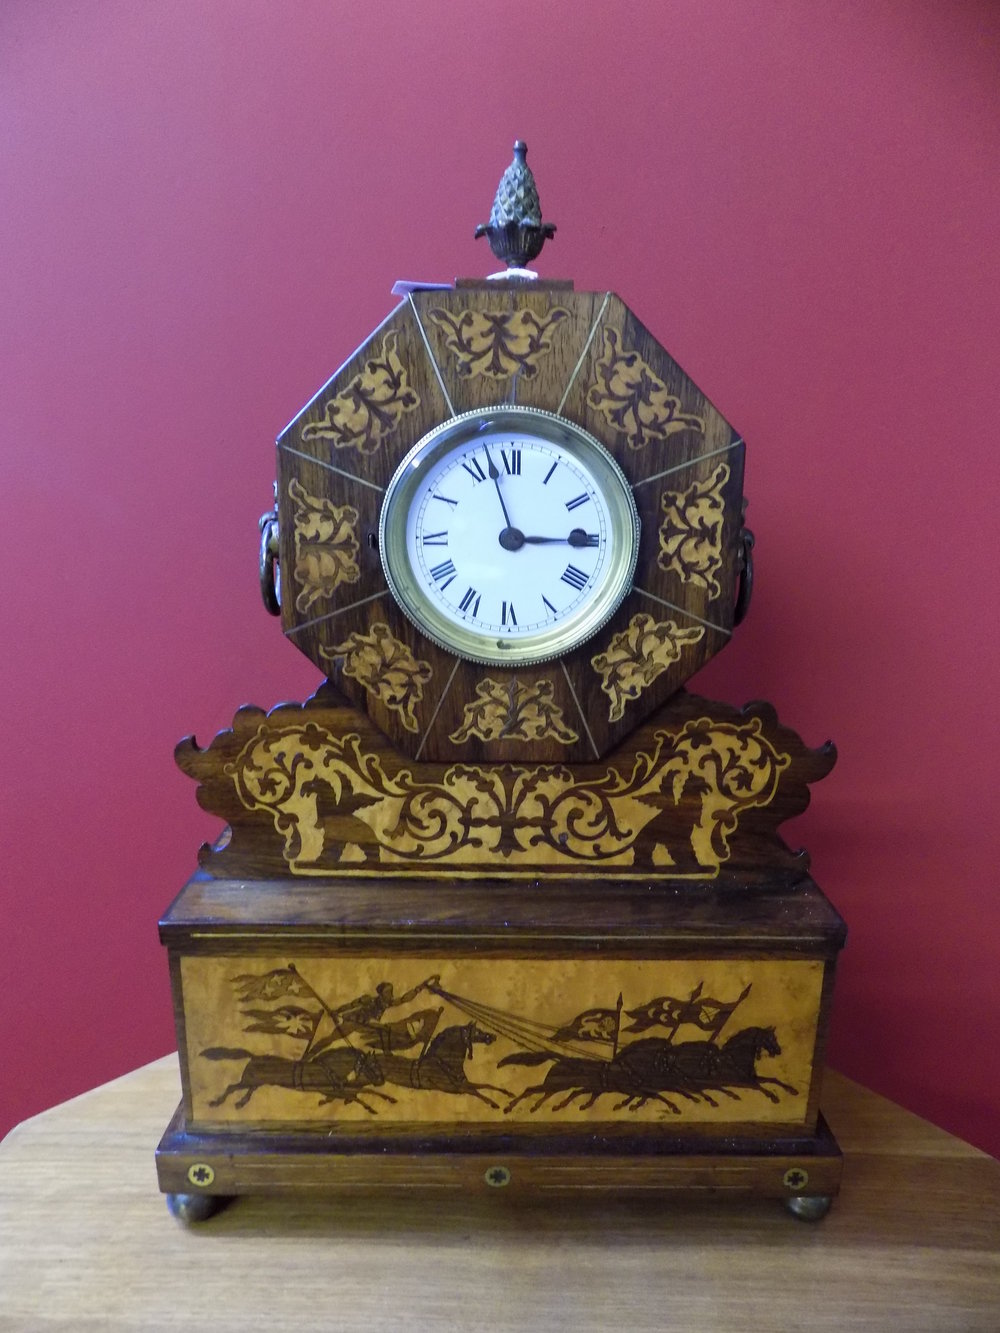 American inlaid mantel clock £240.00